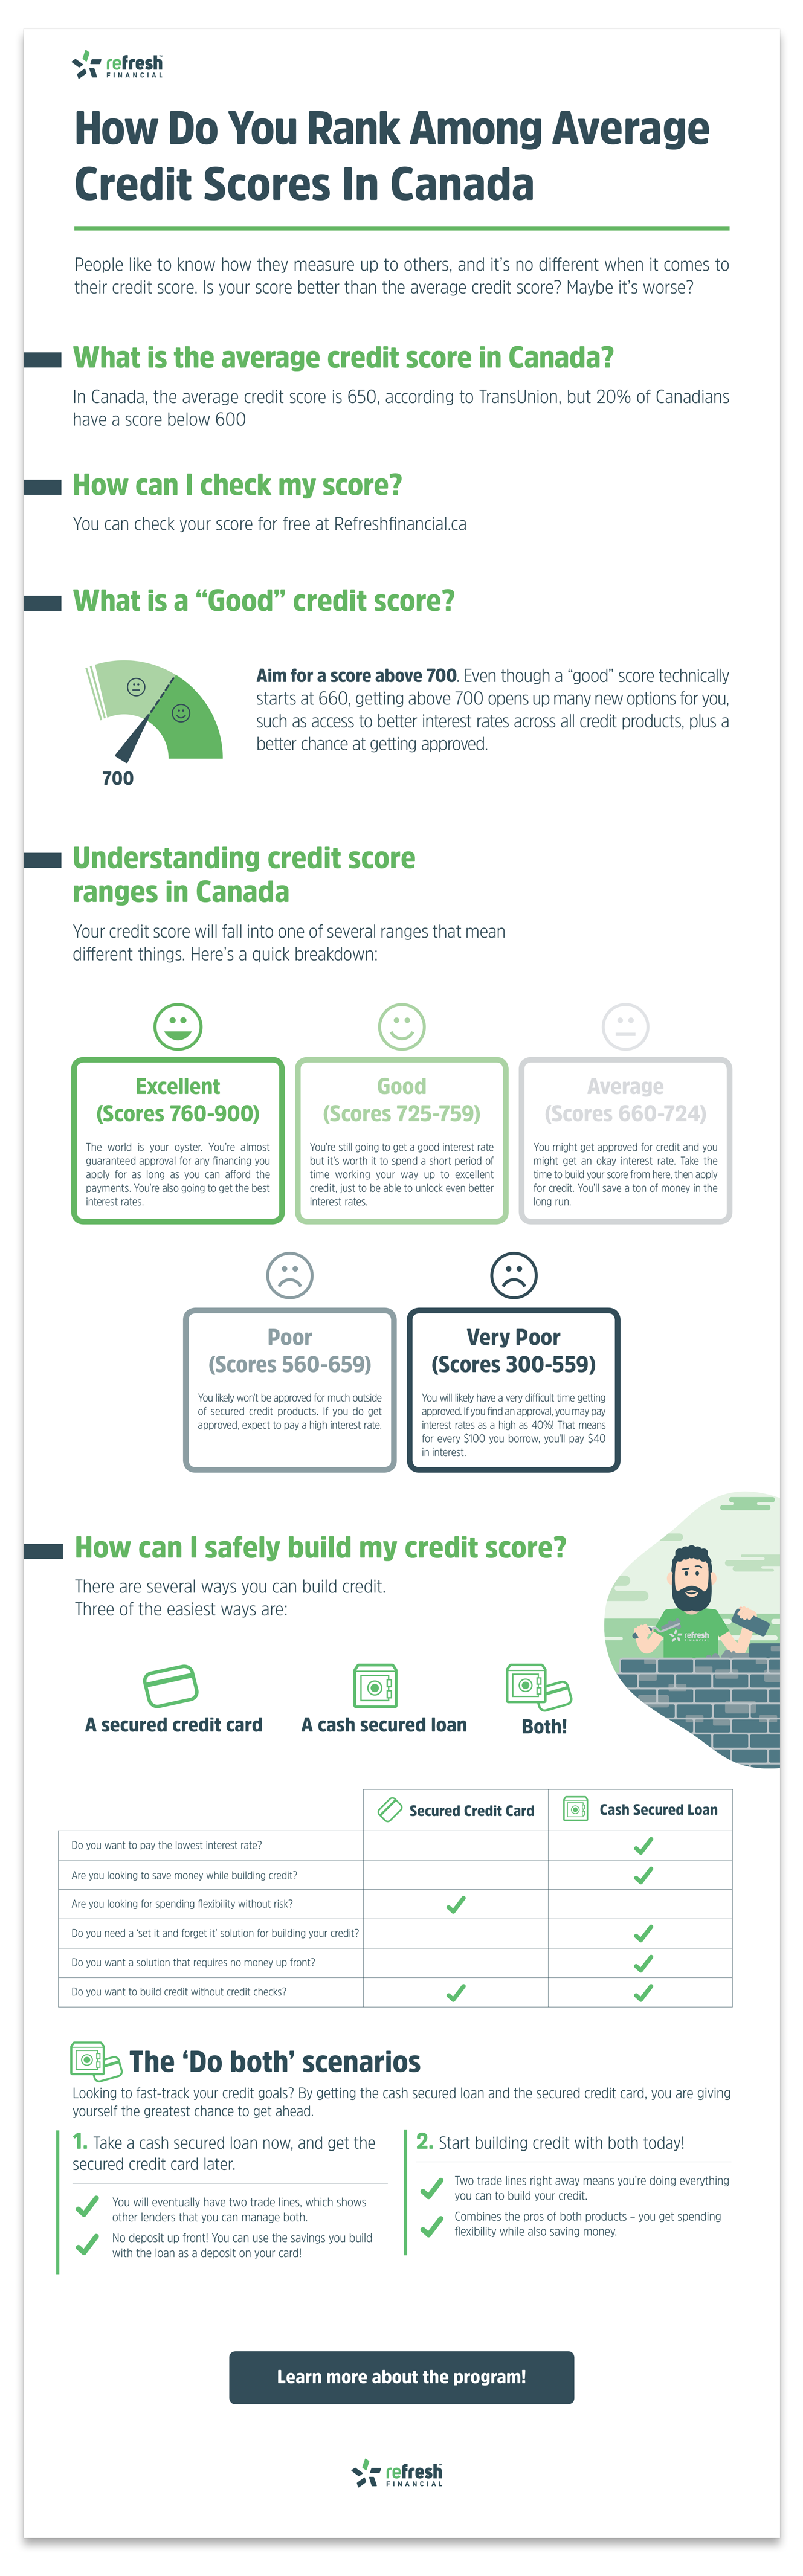 Whats the average credit score in Canada